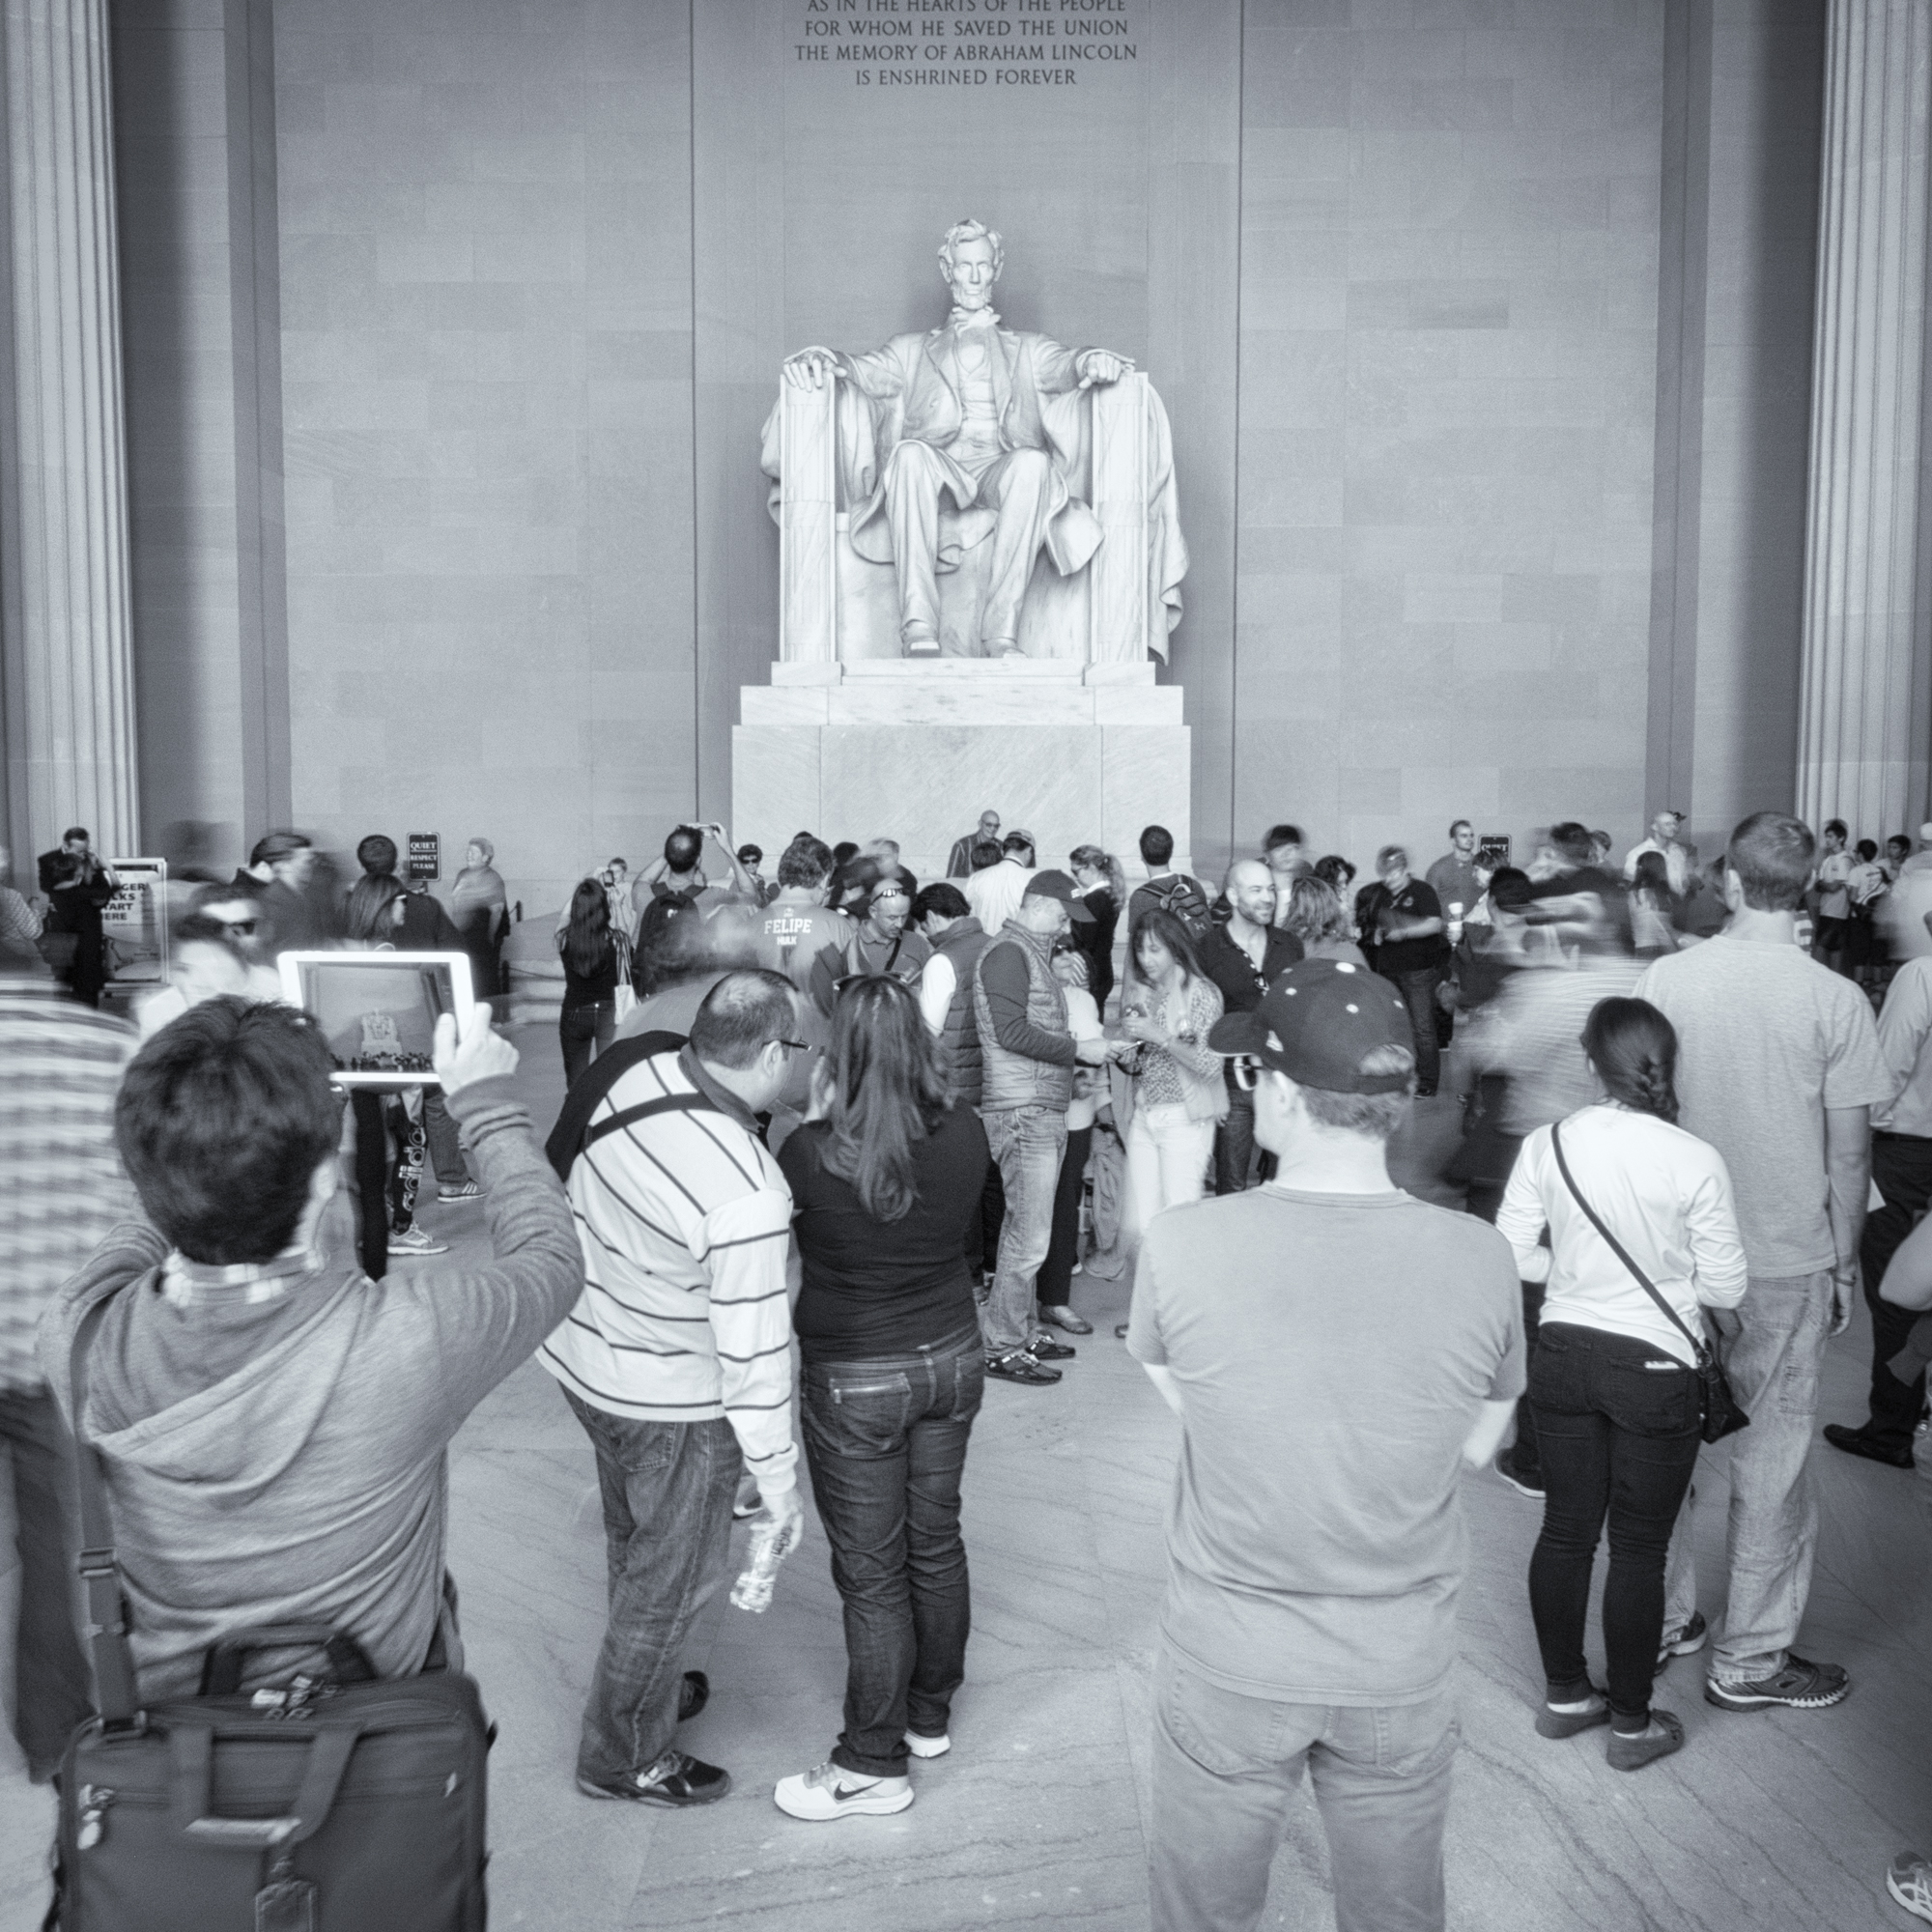 At the Lincoln Memorial